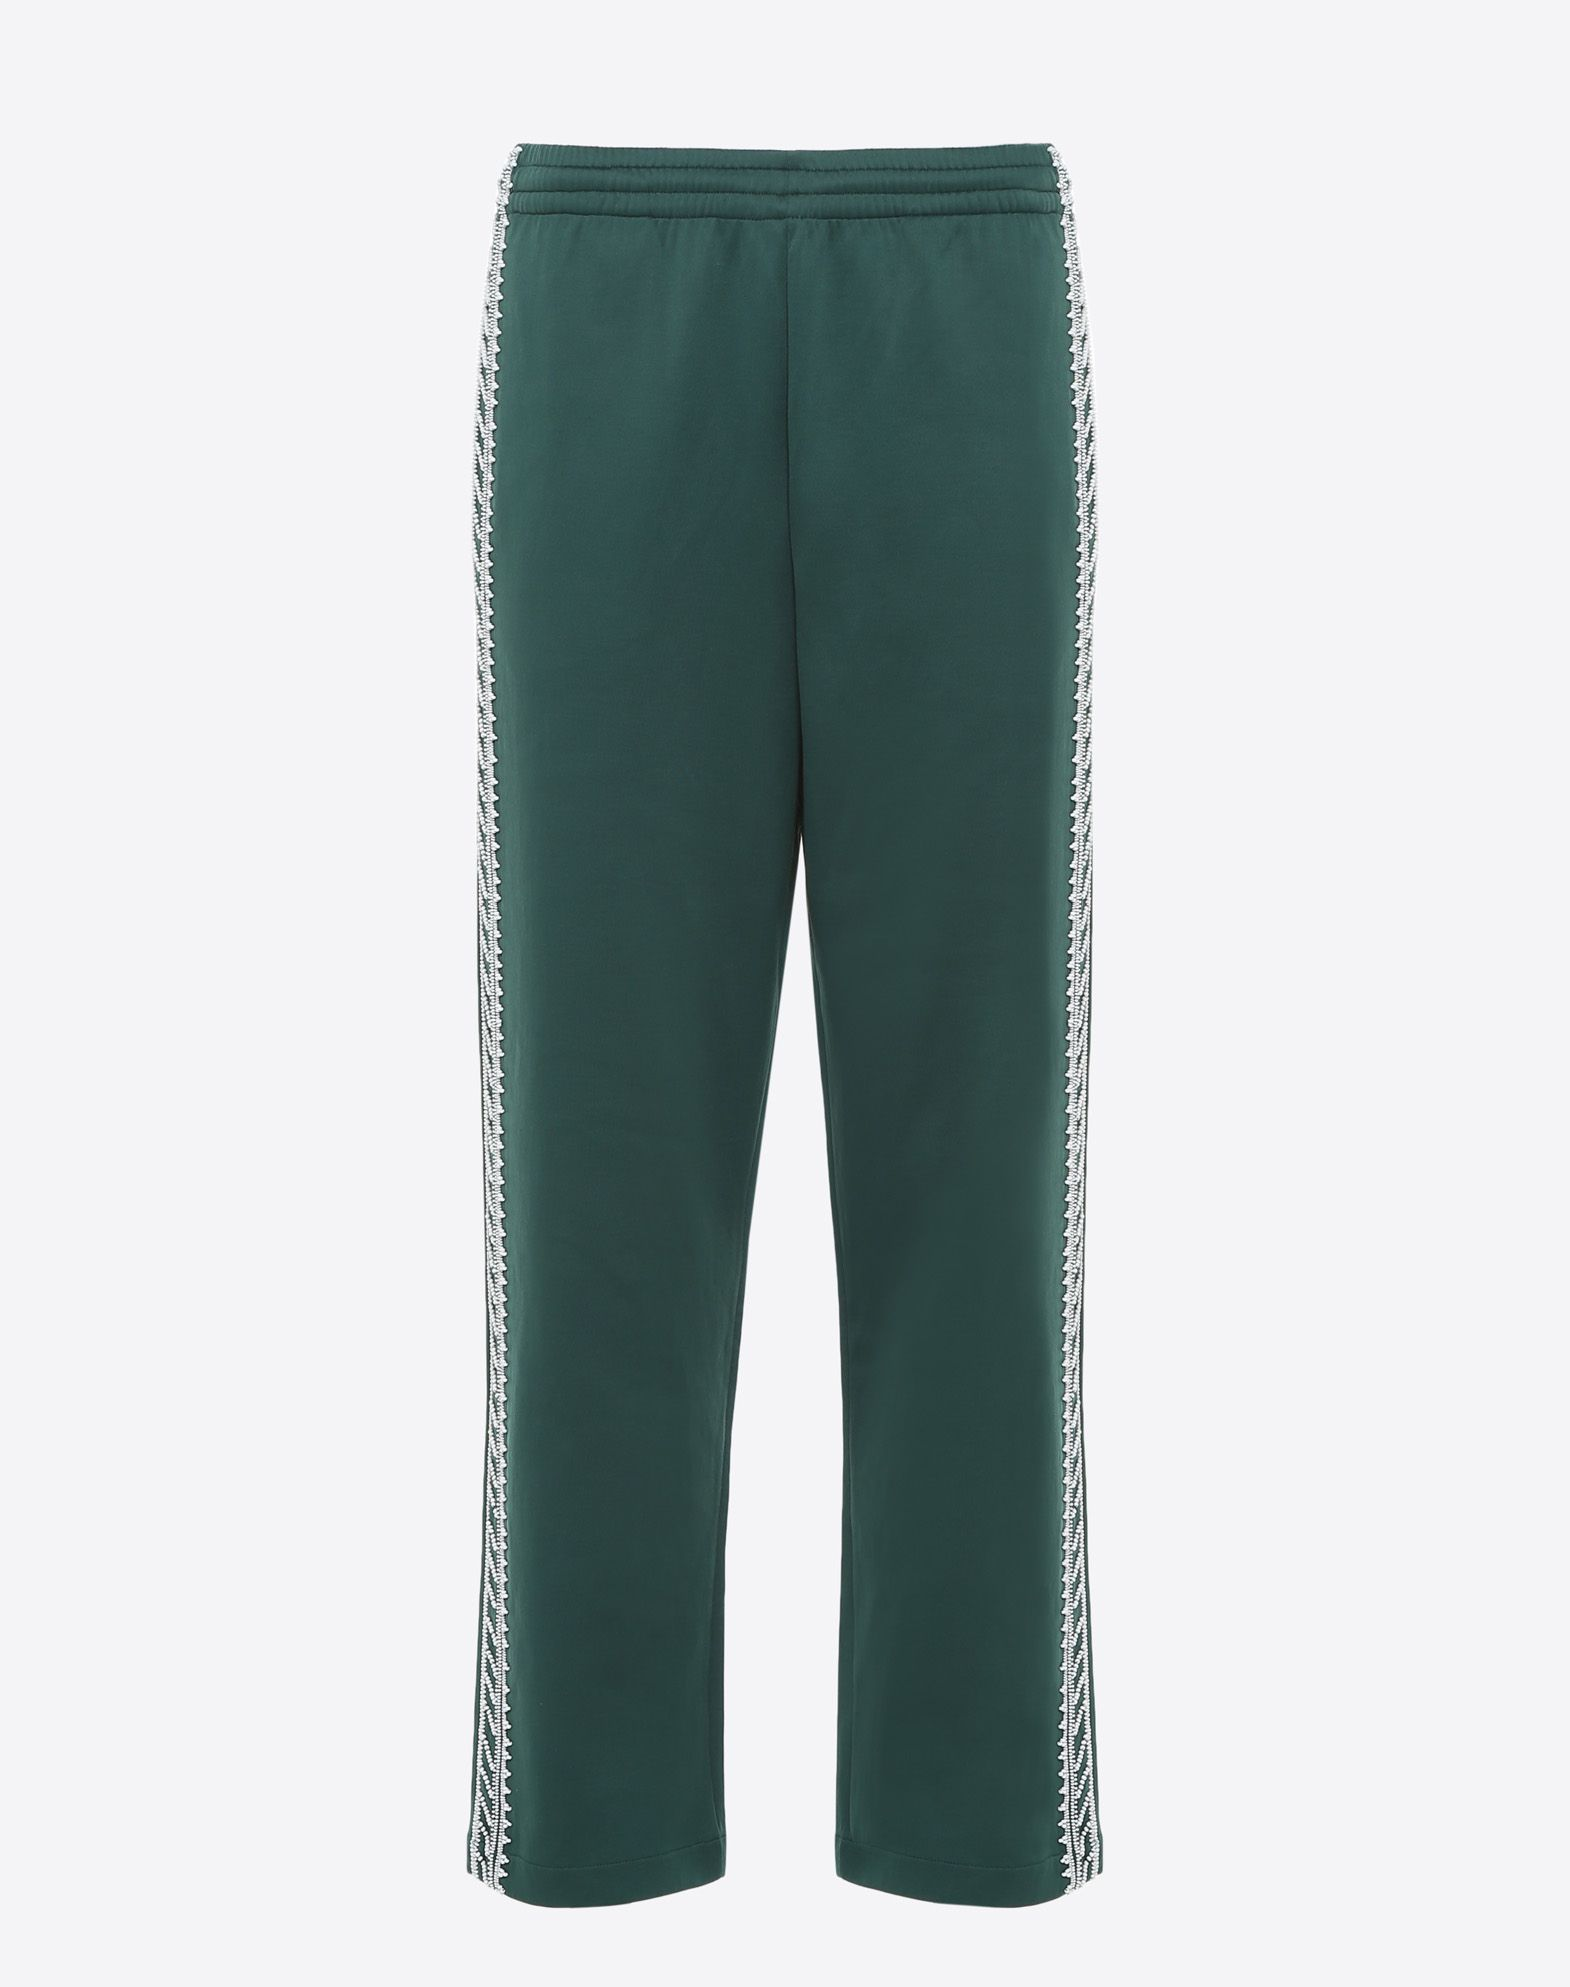 VALENTINO UOMO Jersey trousers with geometric embroidery Trousers U f